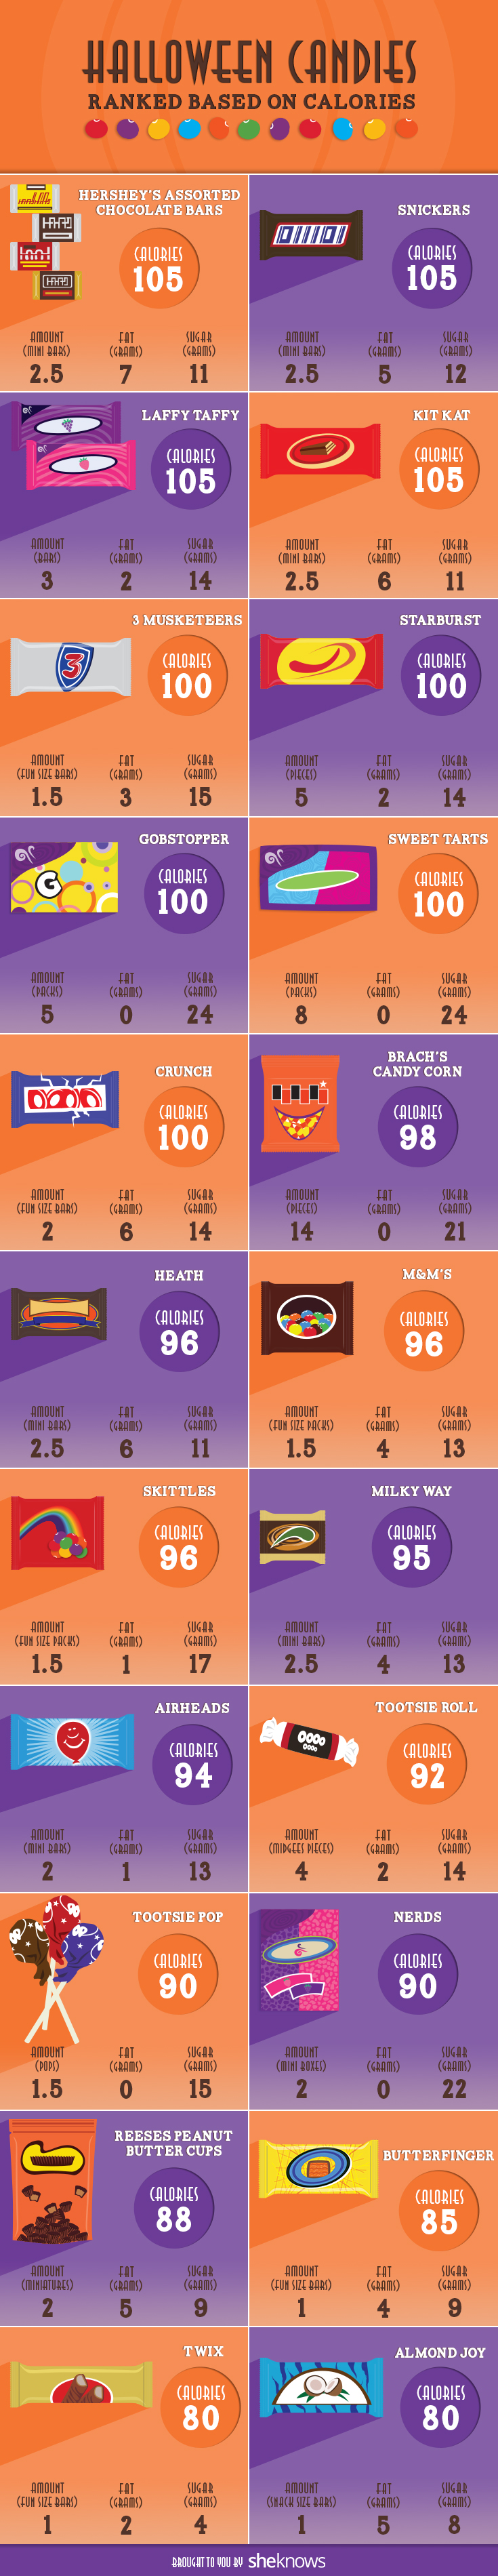 Watch Carbs and Calories in Halloween Candy video